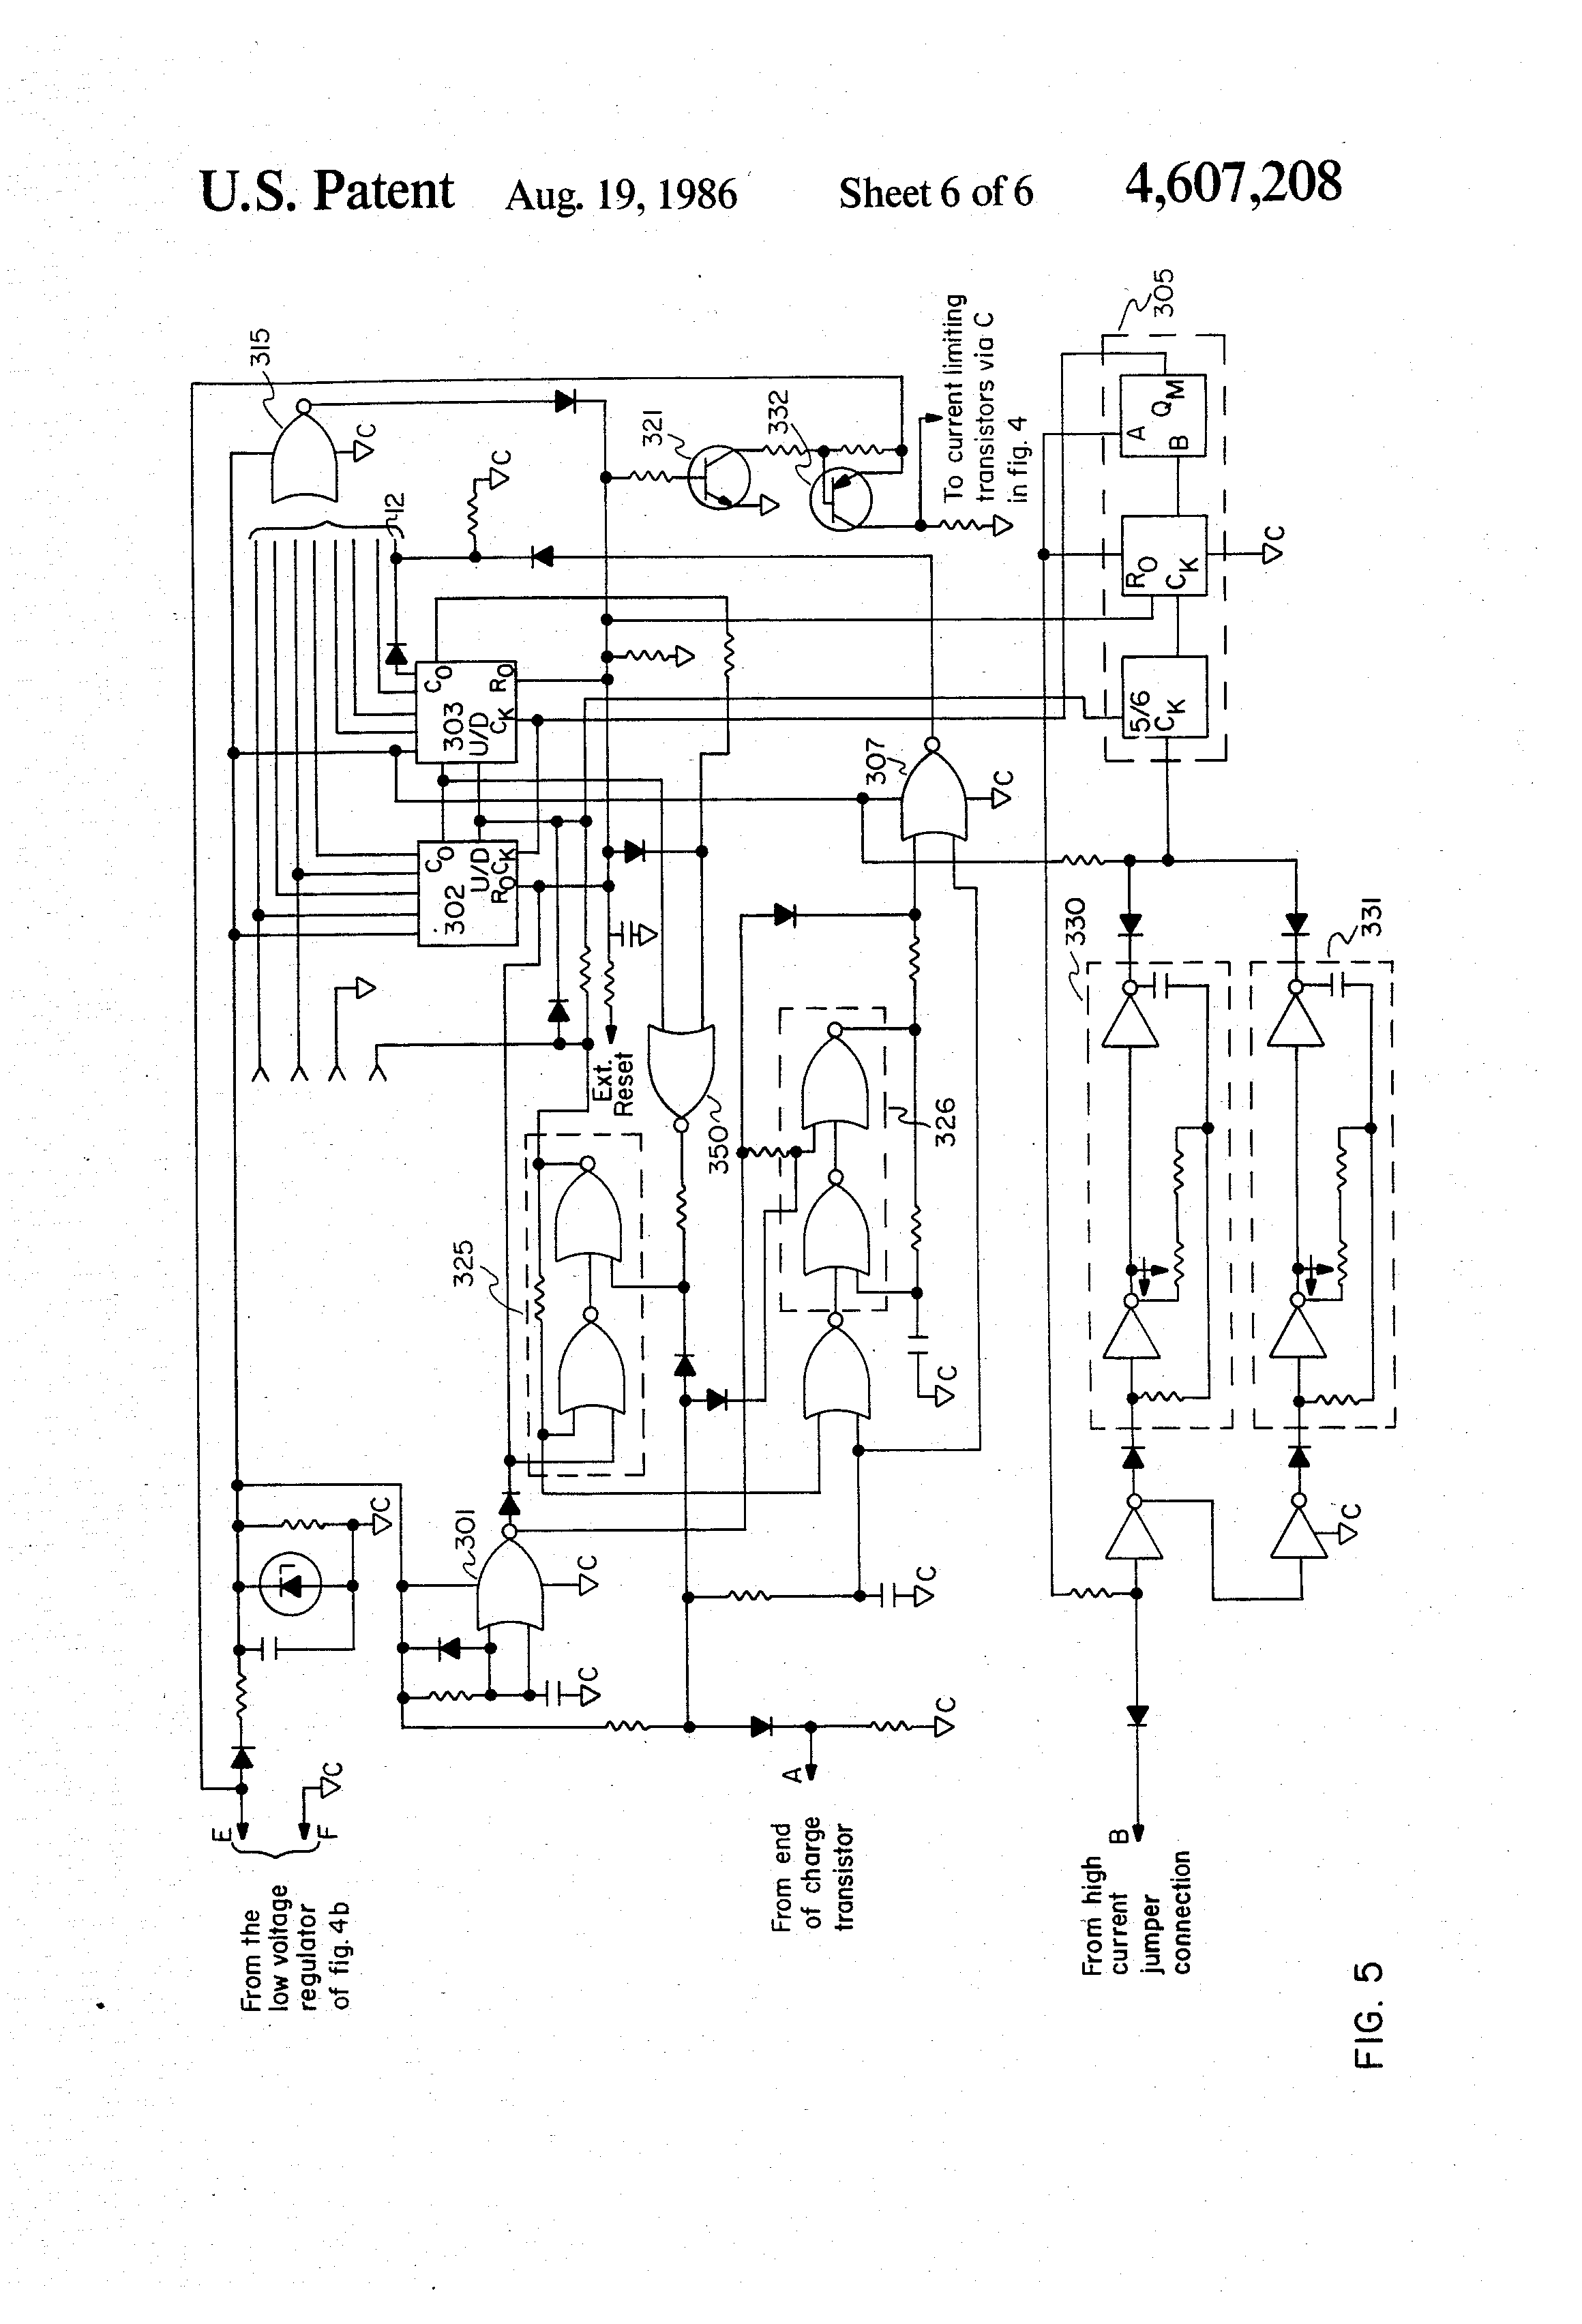 US4607208 6 wiring diagram for schumacher battery charger circuit and schumacher battery charger se-5212a wiring diagram at bayanpartner.co